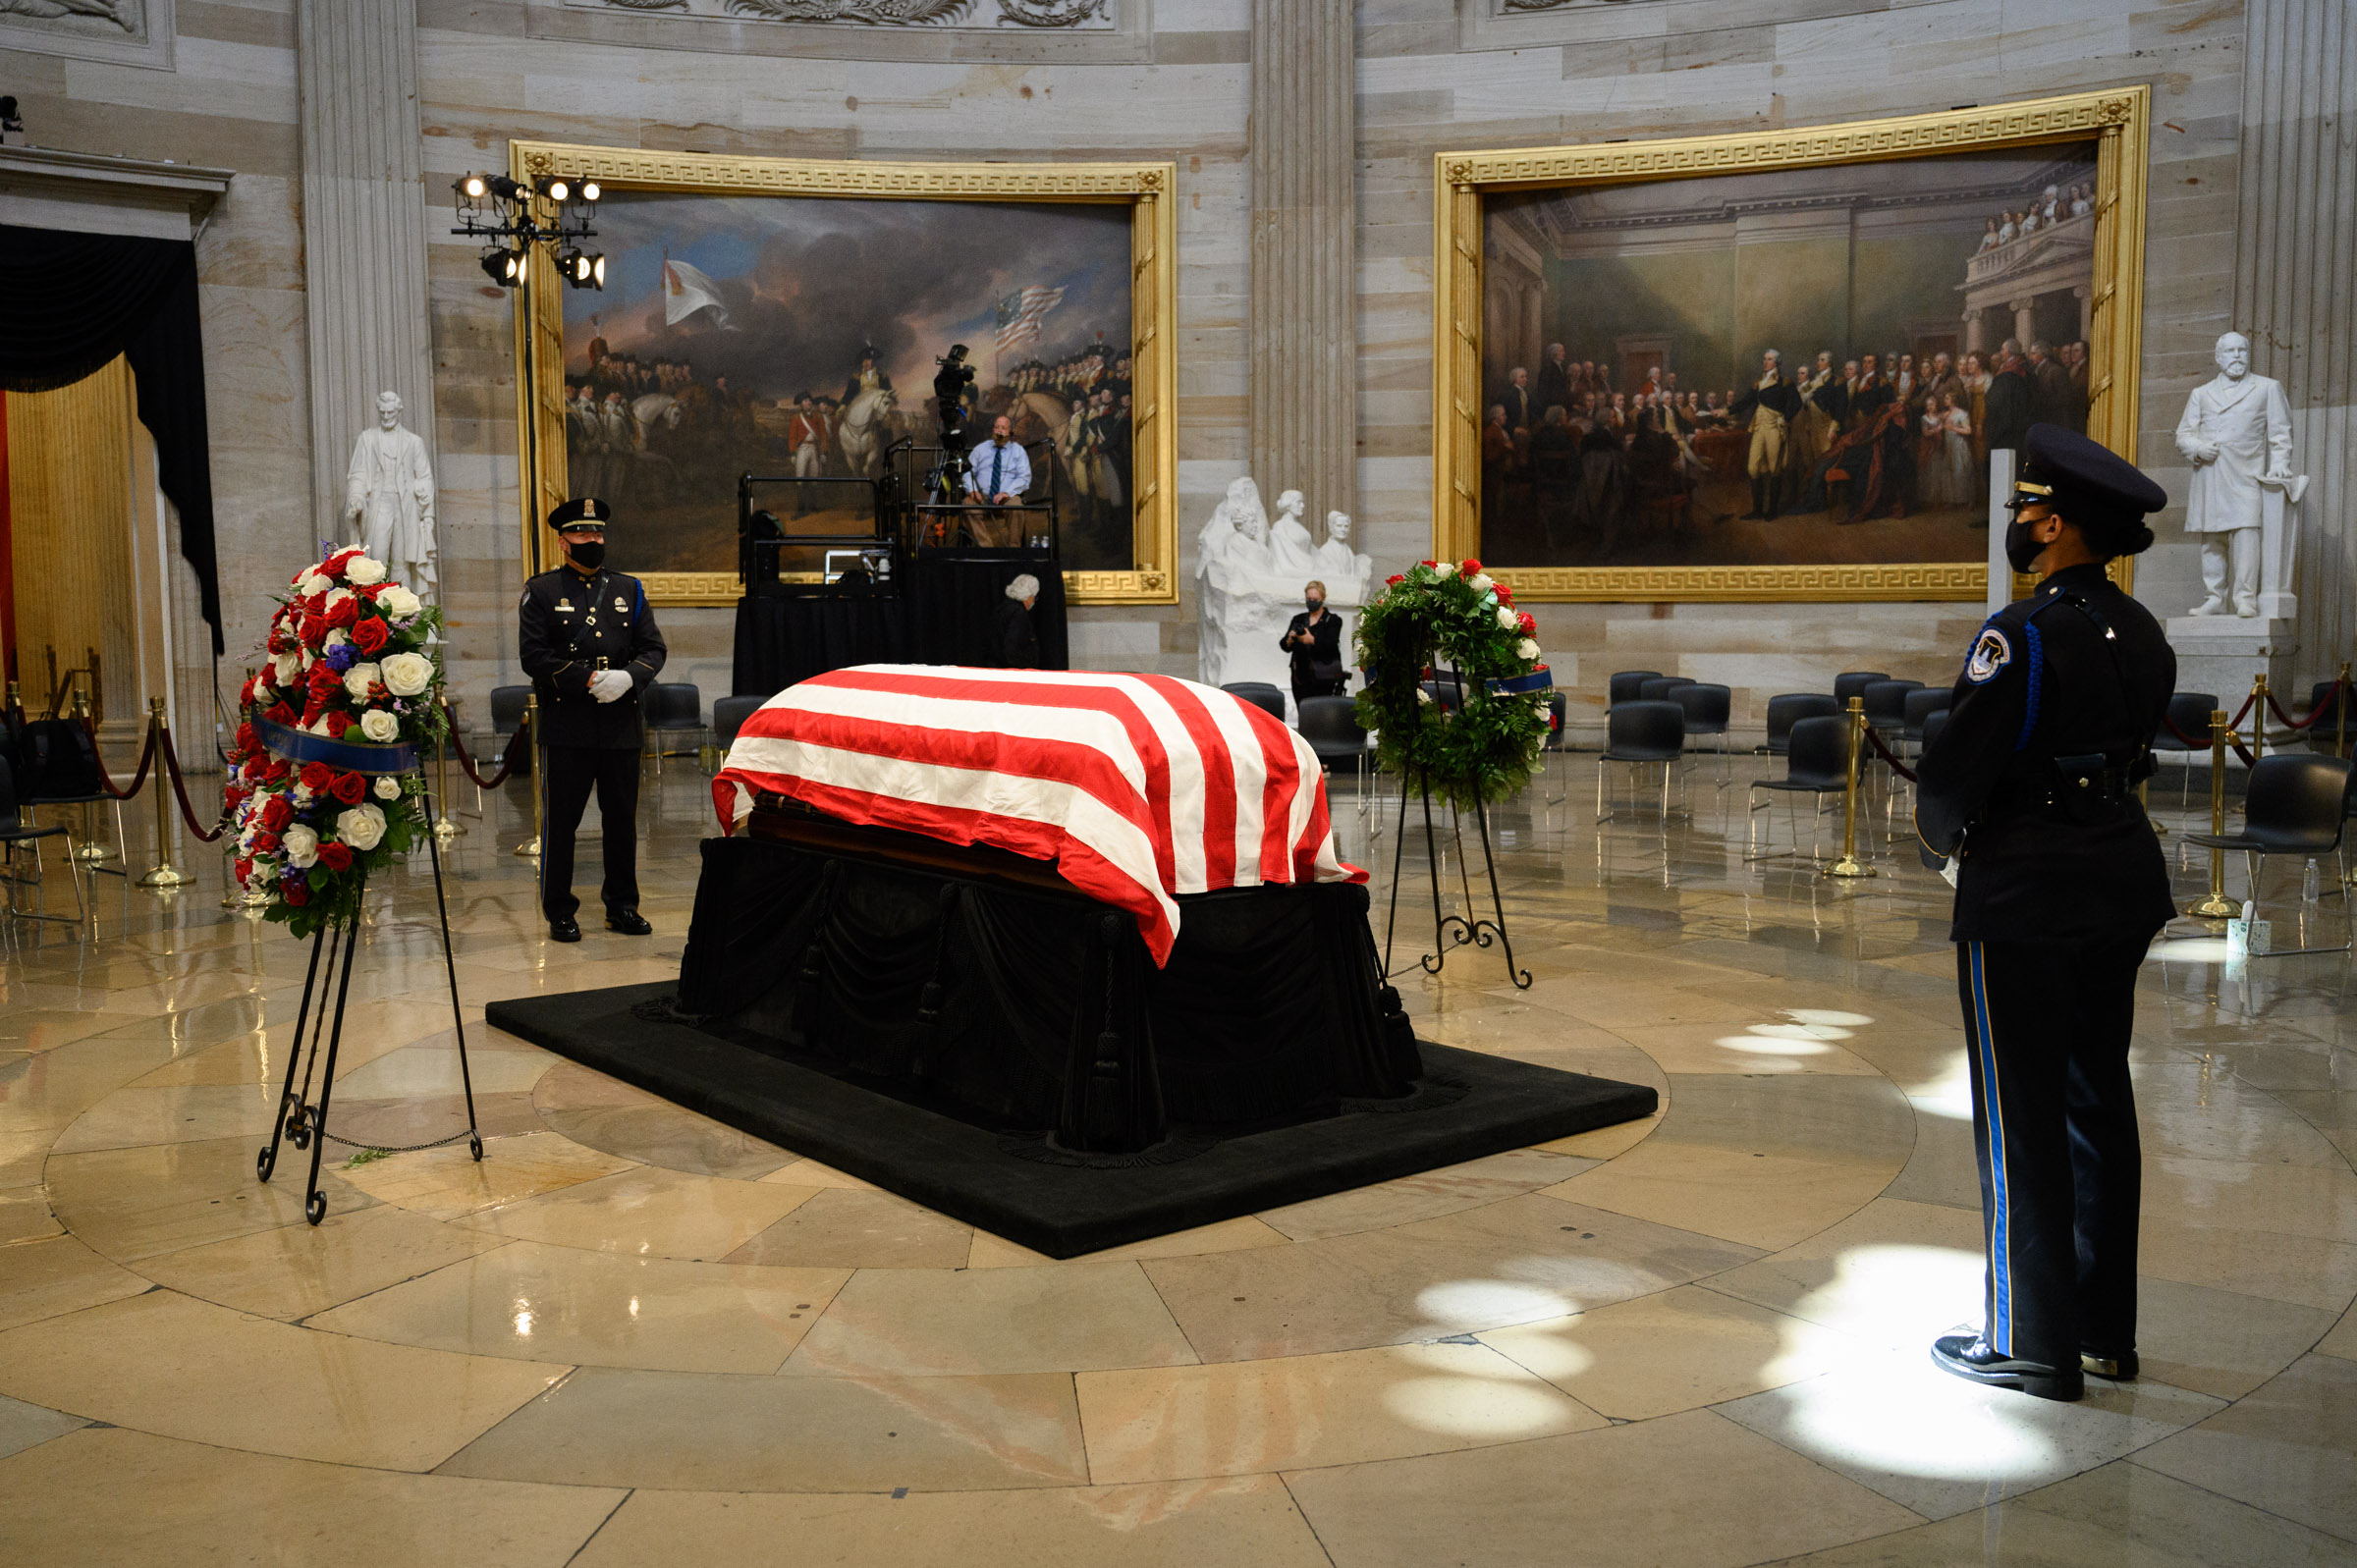 Rep. Lewis casket was placed on the same catafalque that held President Abraham Lincoln's casket.